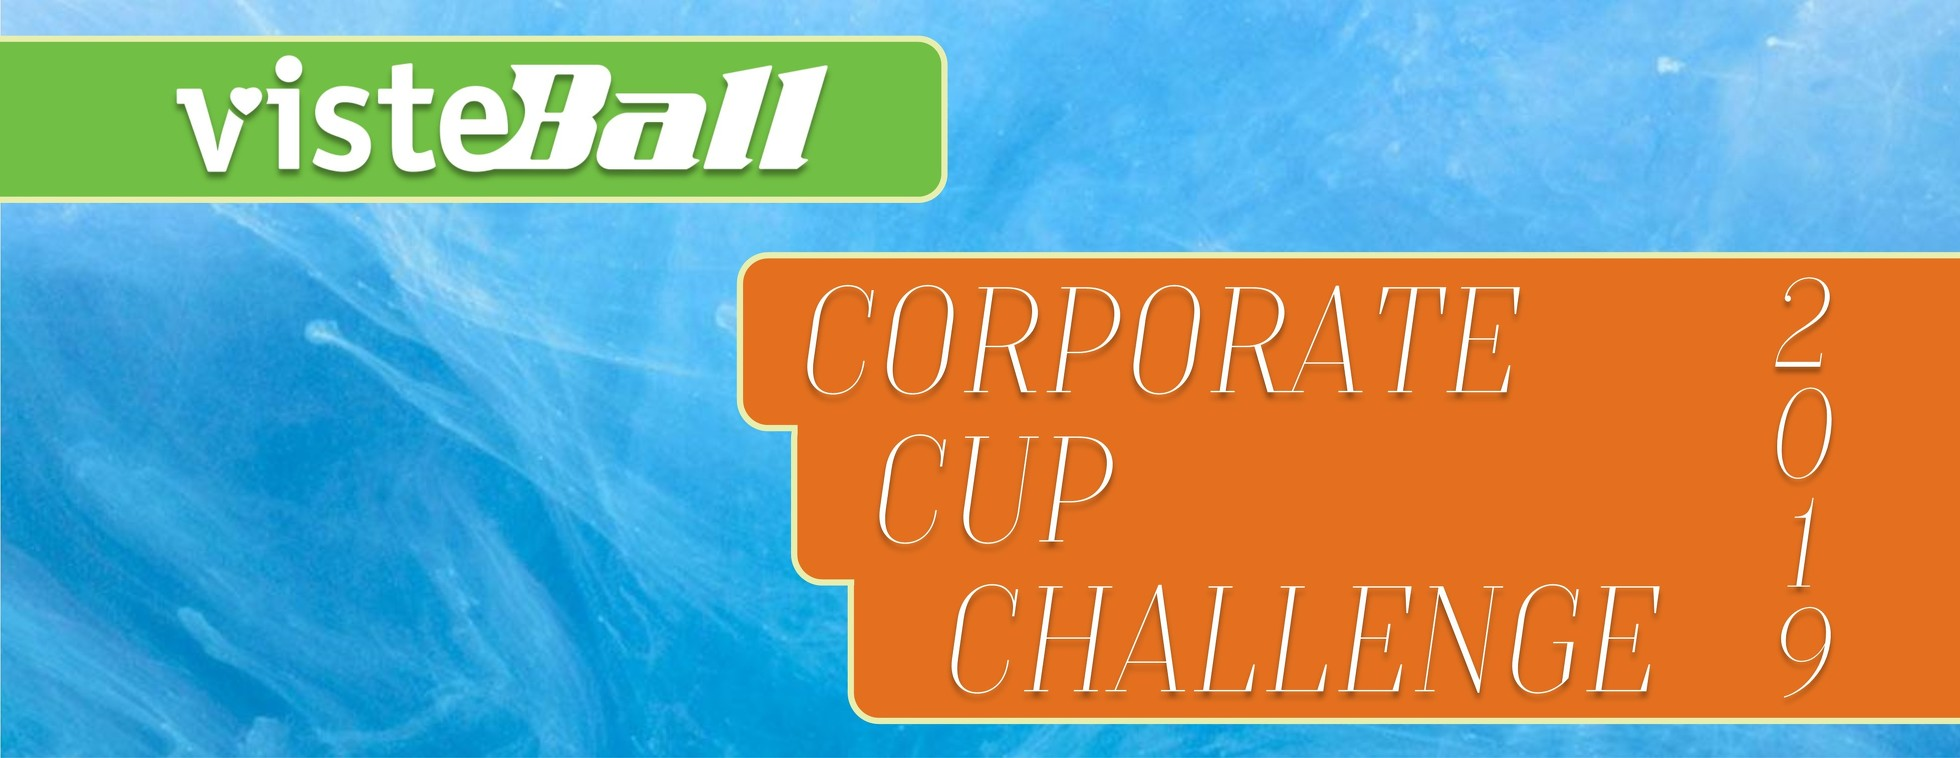 VISTEBall Corporate Cup Challenge 2019